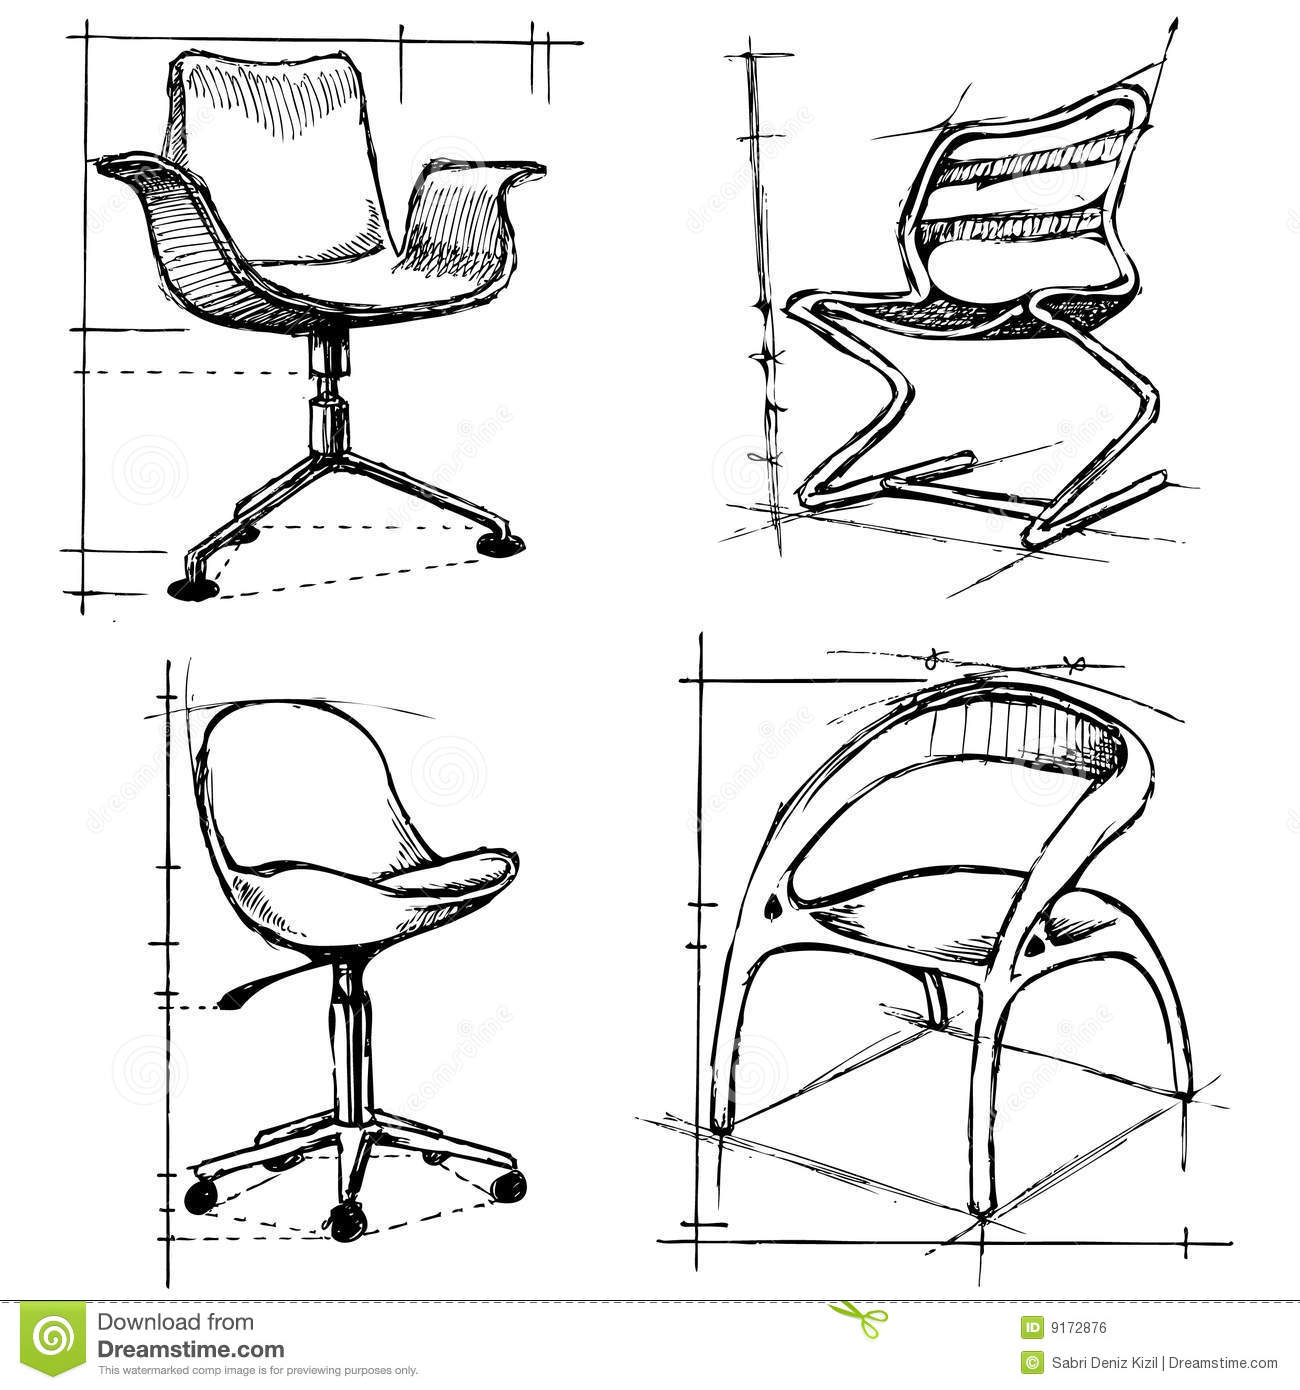 Modern furniture sketches chair sketches - Simple Chair Sketches Modern Chairs Illustration Royalty Free Stock Image Download